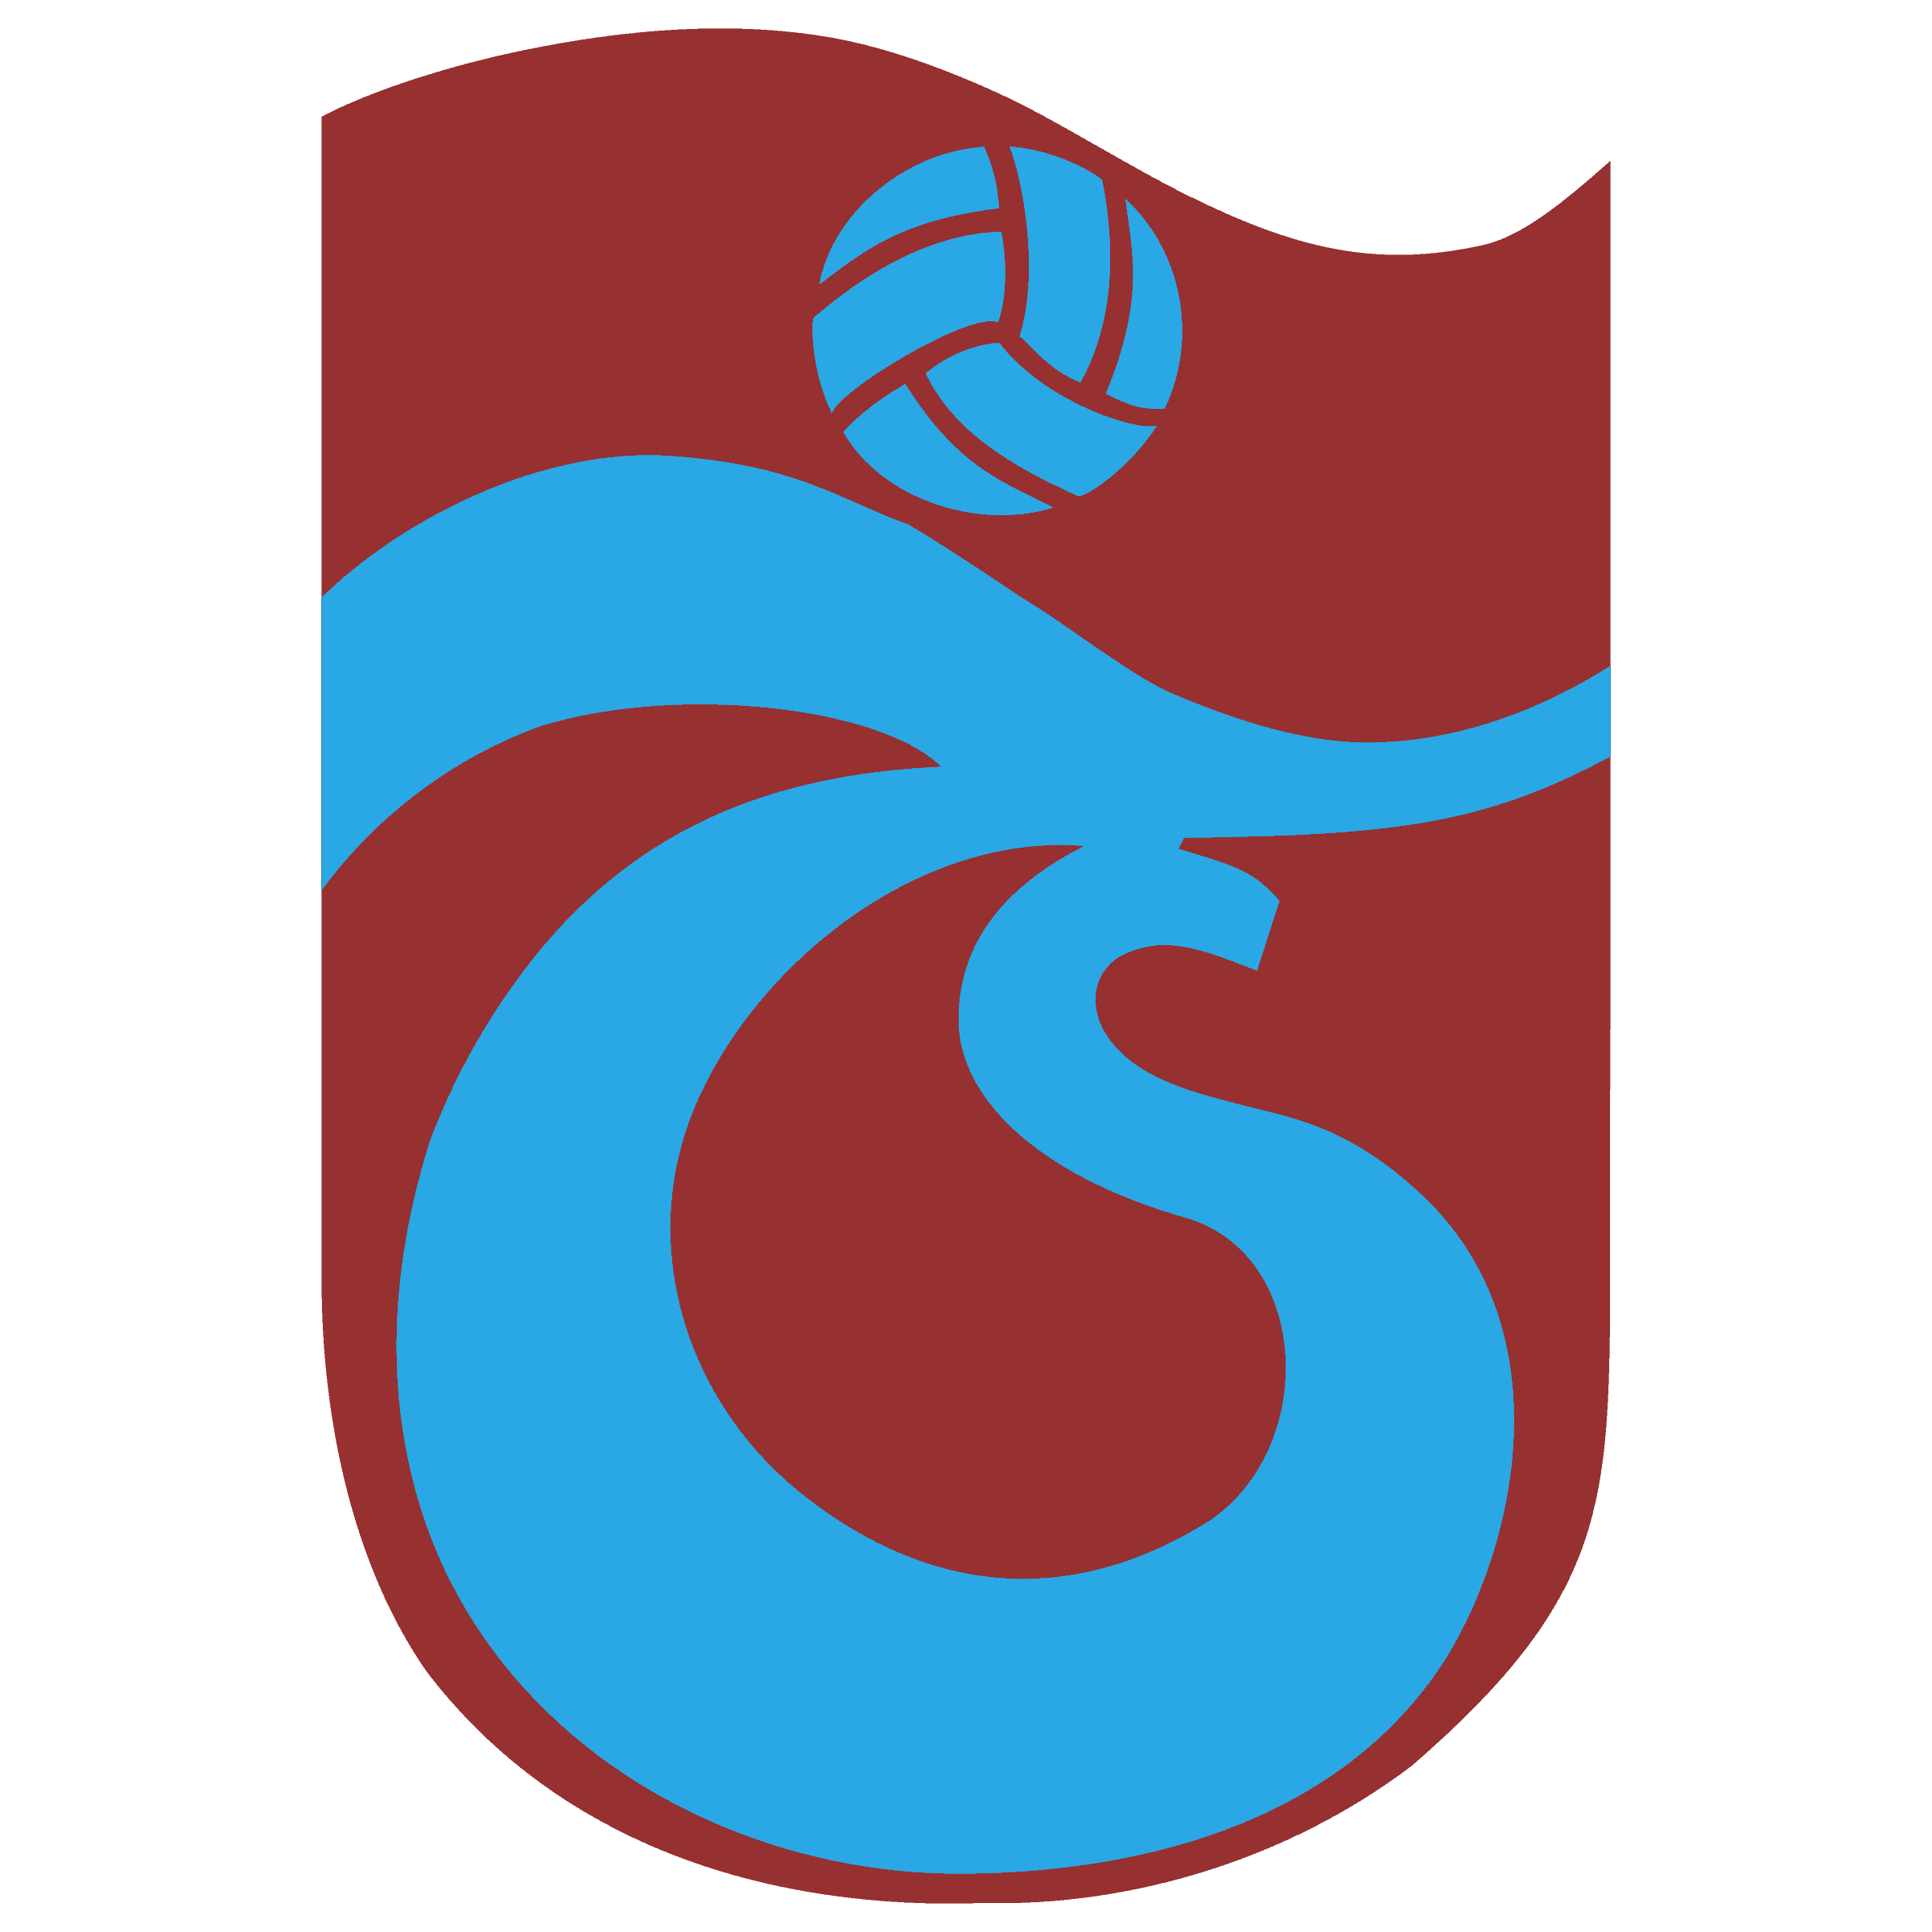 trabzonspor-logo-png-transparent